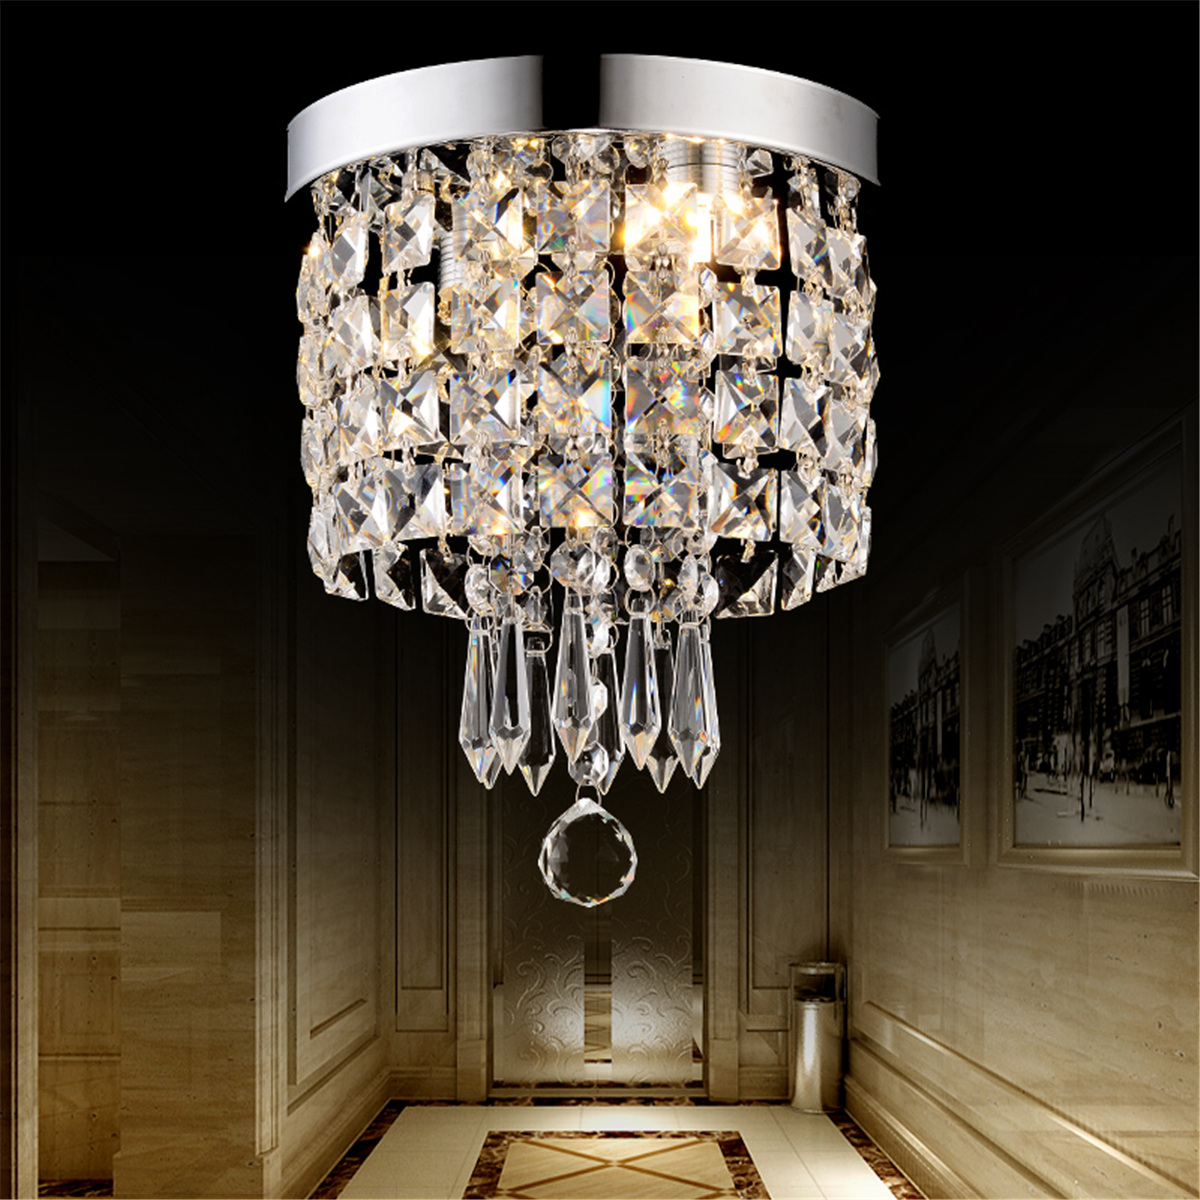 Led Chandelier Led Pendant Ceiling Lamp Elegant Crystal Ball Light Led Chandelier Light Home Decor